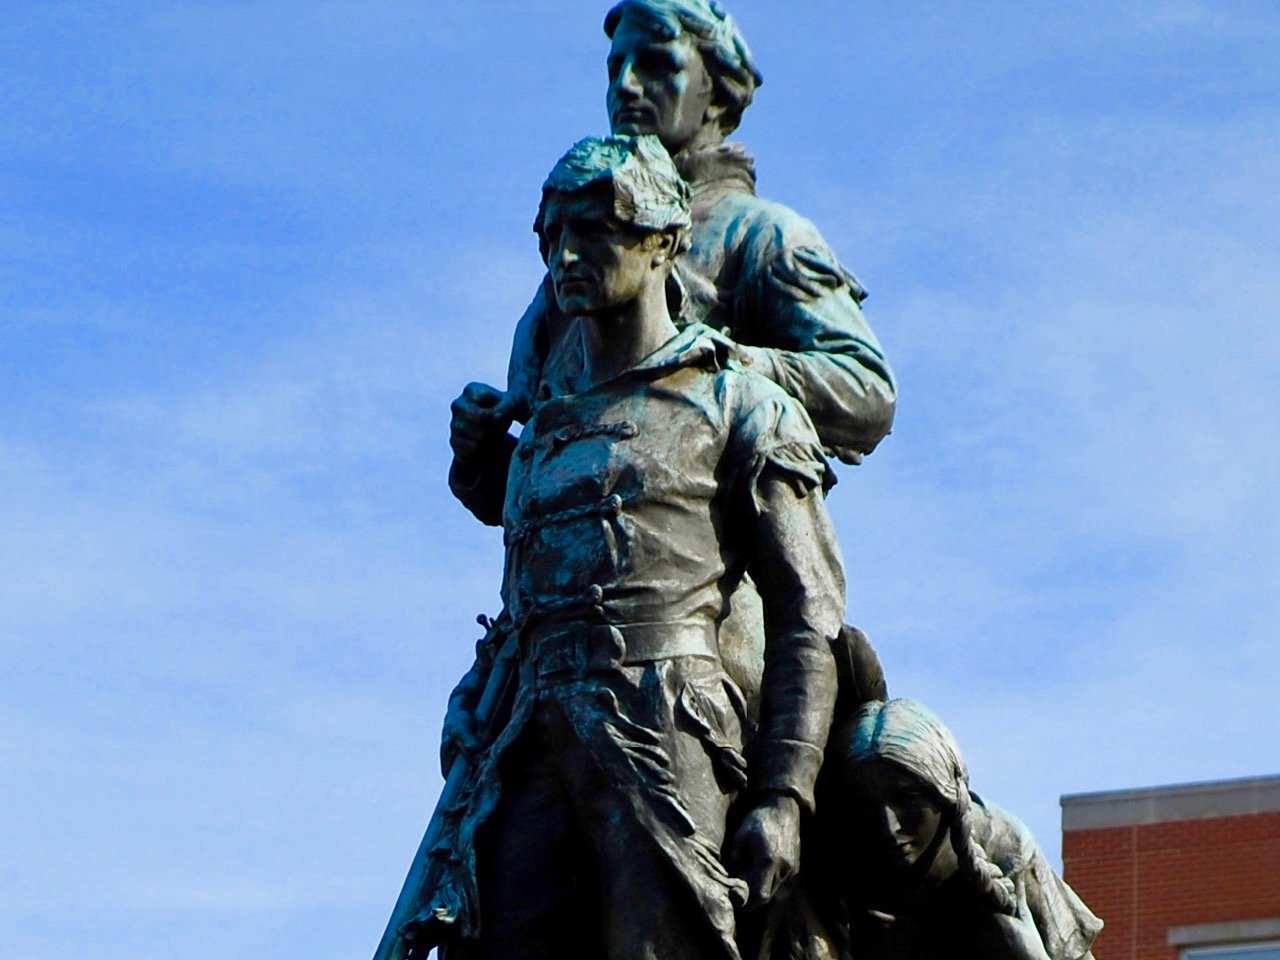 Anthony Guy Lopez: Colonial depictions of Native people must come down